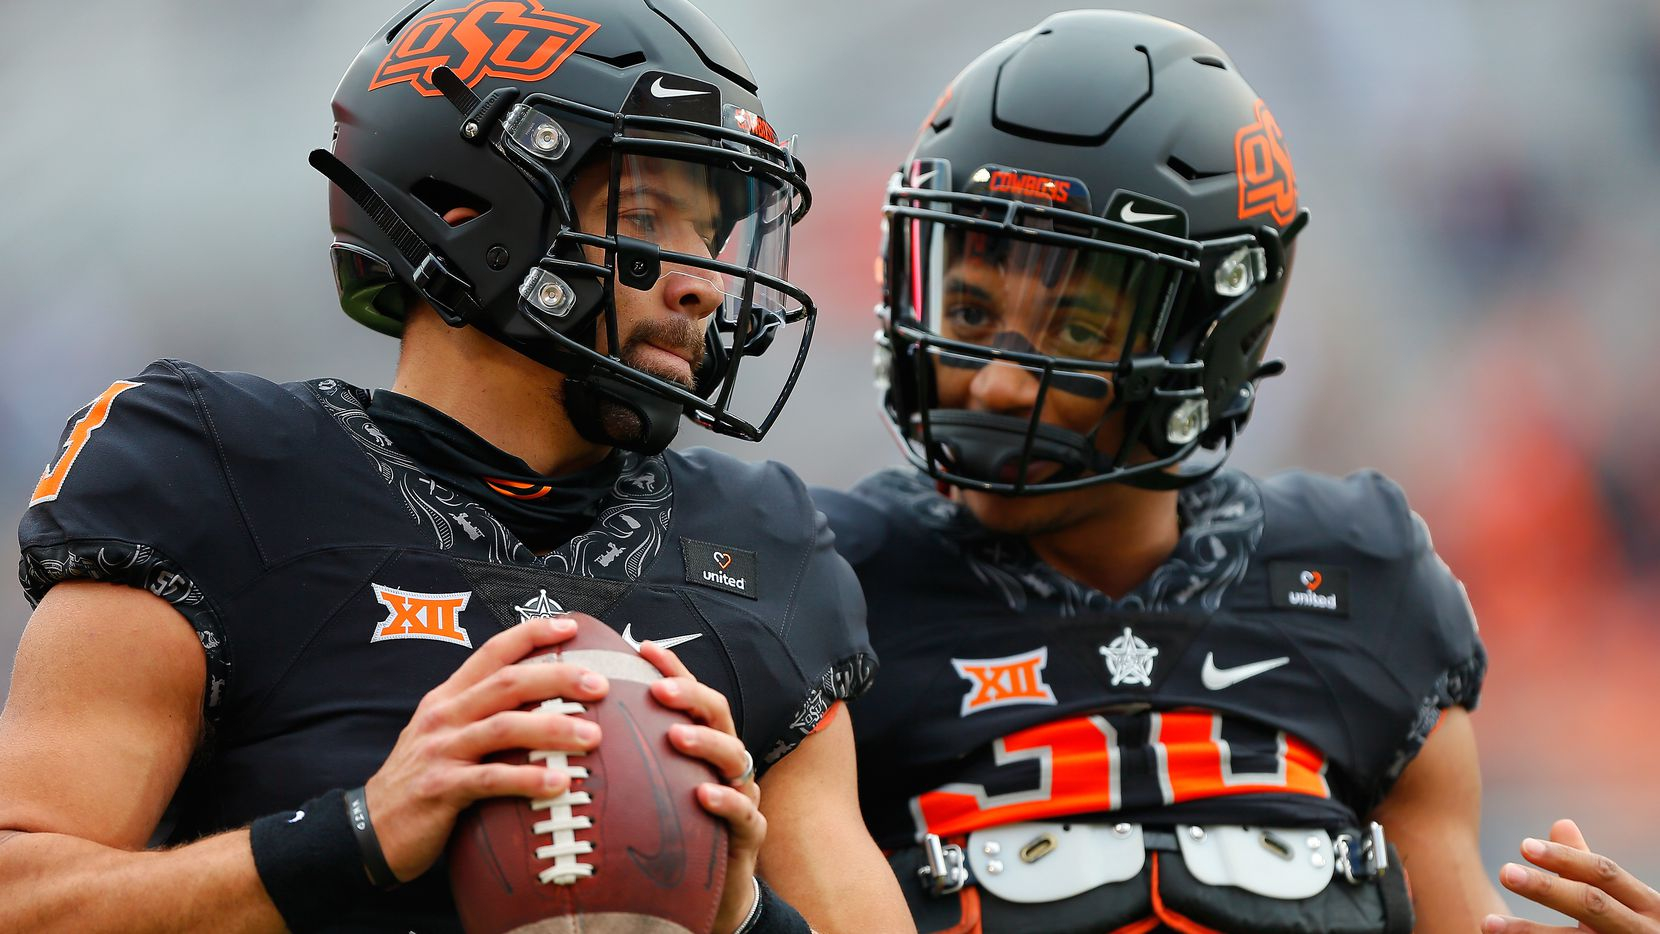 Quarterback Spencer Sanders #3 and running back Chuba Hubbard #30 of the Oklahoma State Cowboys talk before a game against the Texas Longhorns at Boone Pickens Stadium on October 31, 2020 in Stillwater, Oklahoma. (Pool Photo by Brian Bahr/Getty Images)